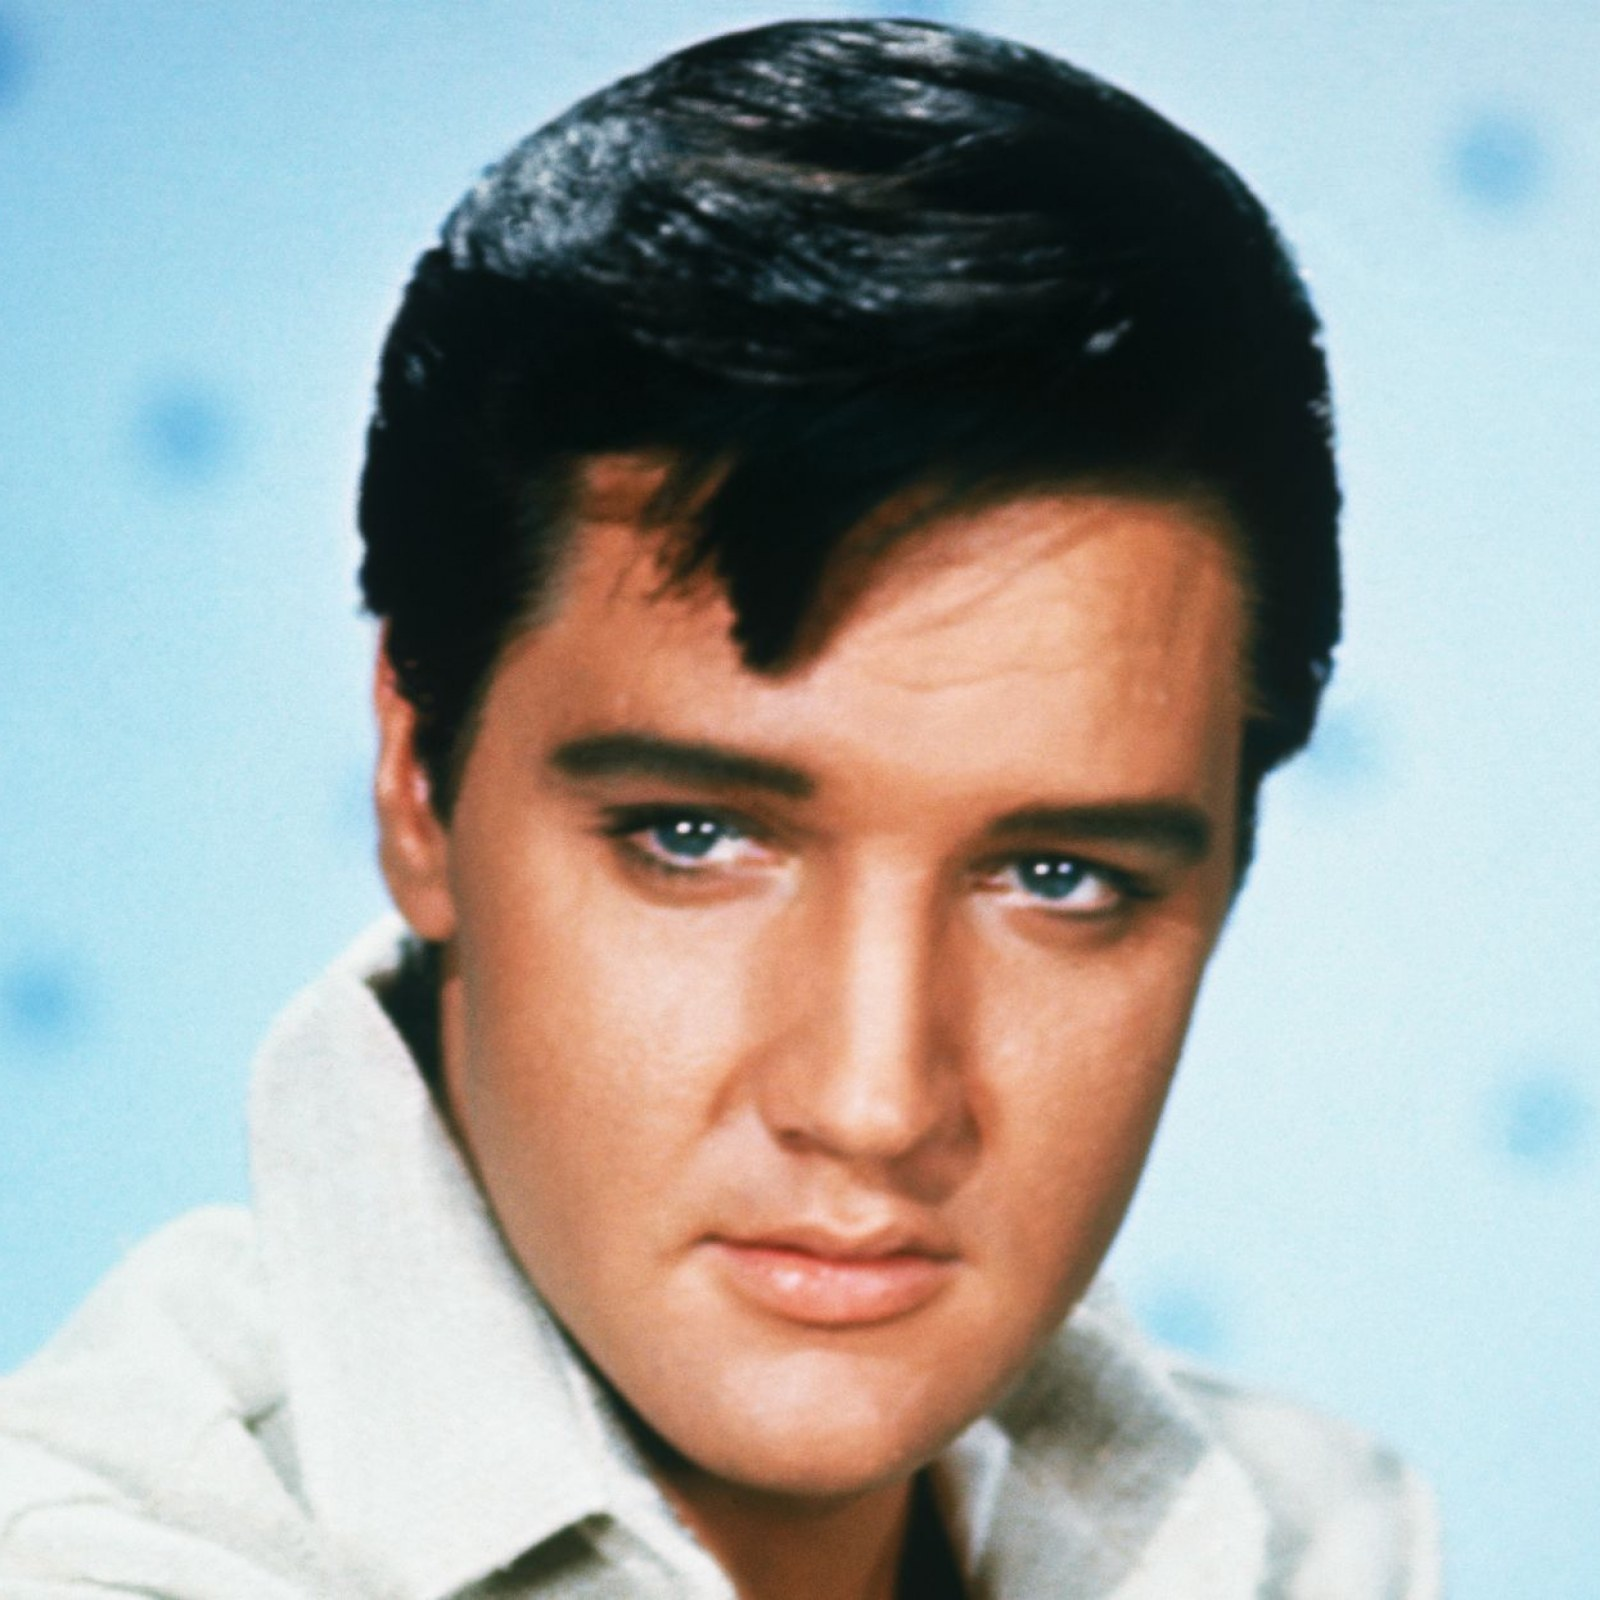 Elvis Presley 40 Years Later Was The King Of Rock N Roll Guilty Of Appropriating Black Music